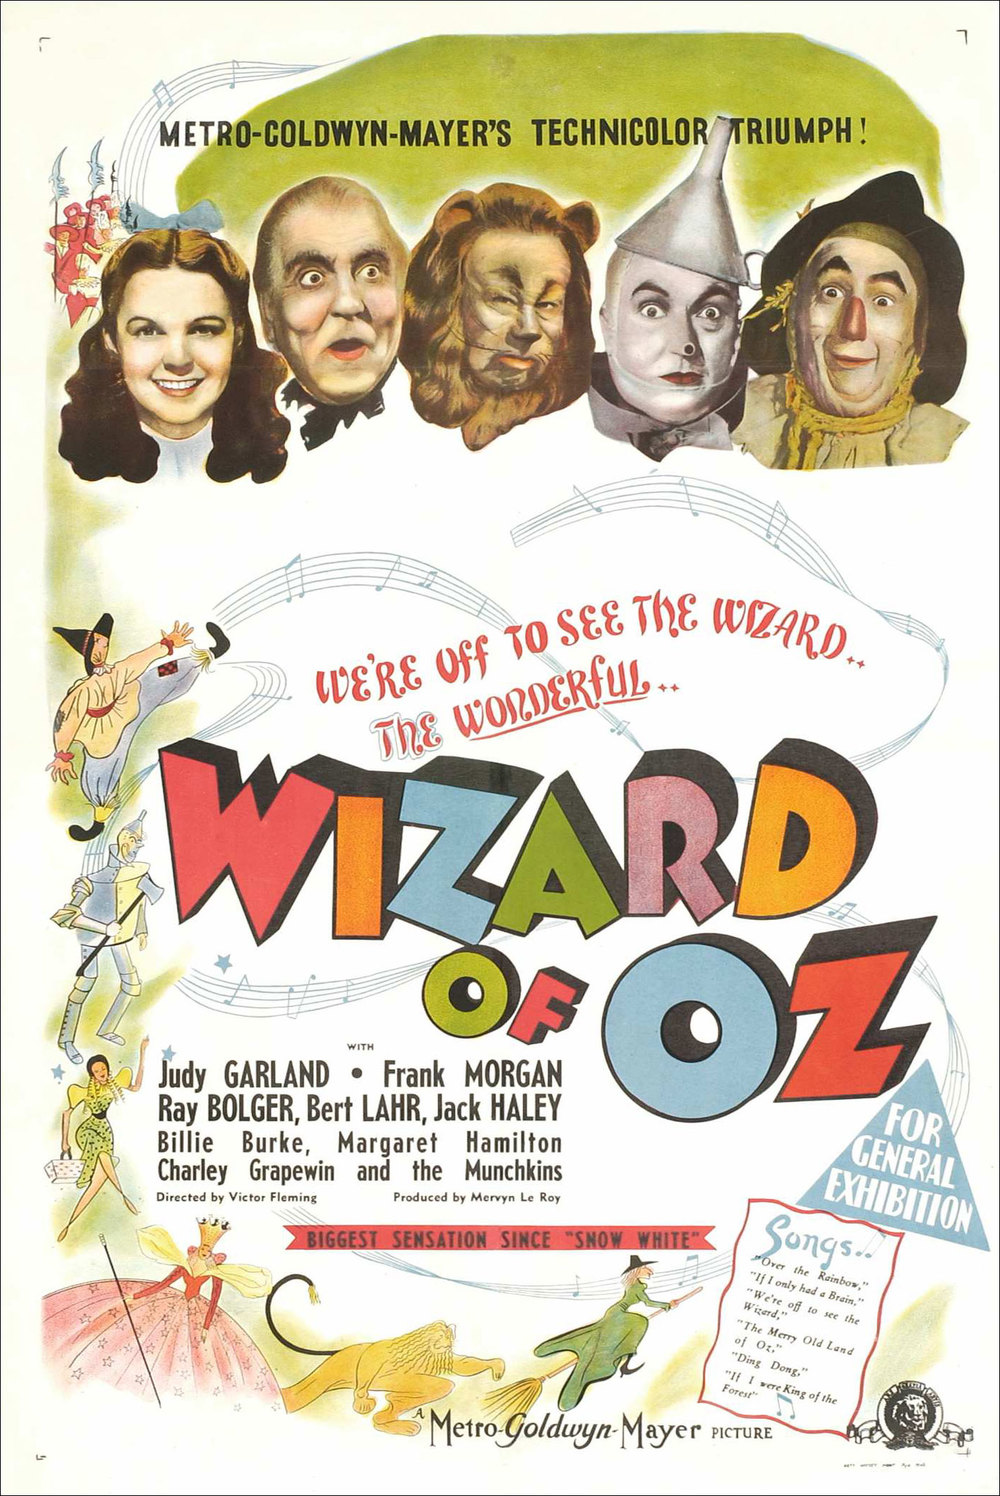 The Wizard of Oz, dir. Victor Fleming (1939) original movie poster.